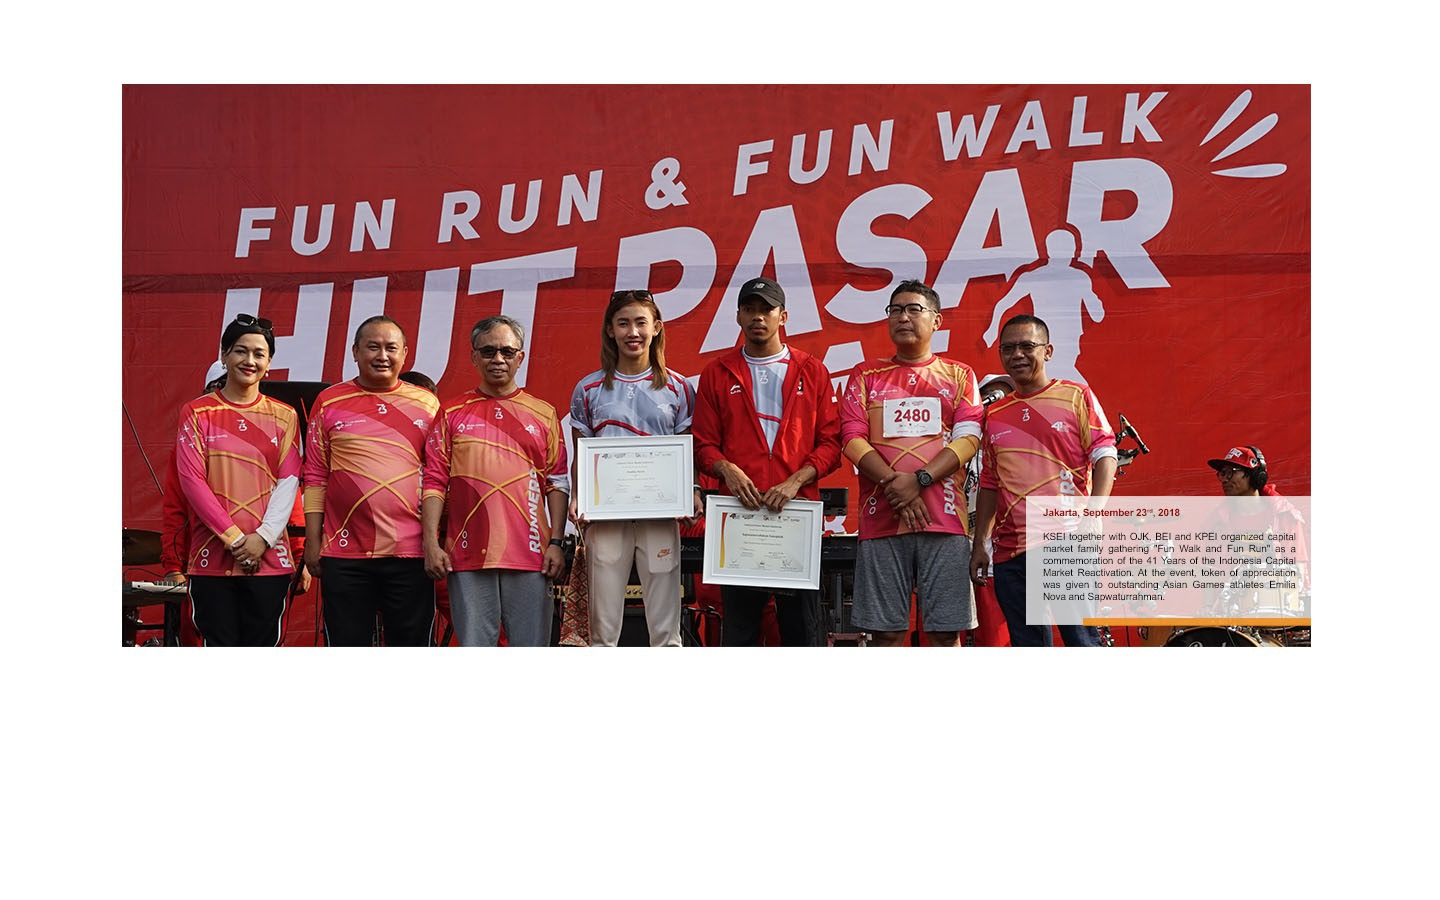 Fun Walk Fun Run HUT Pasar Modal 41